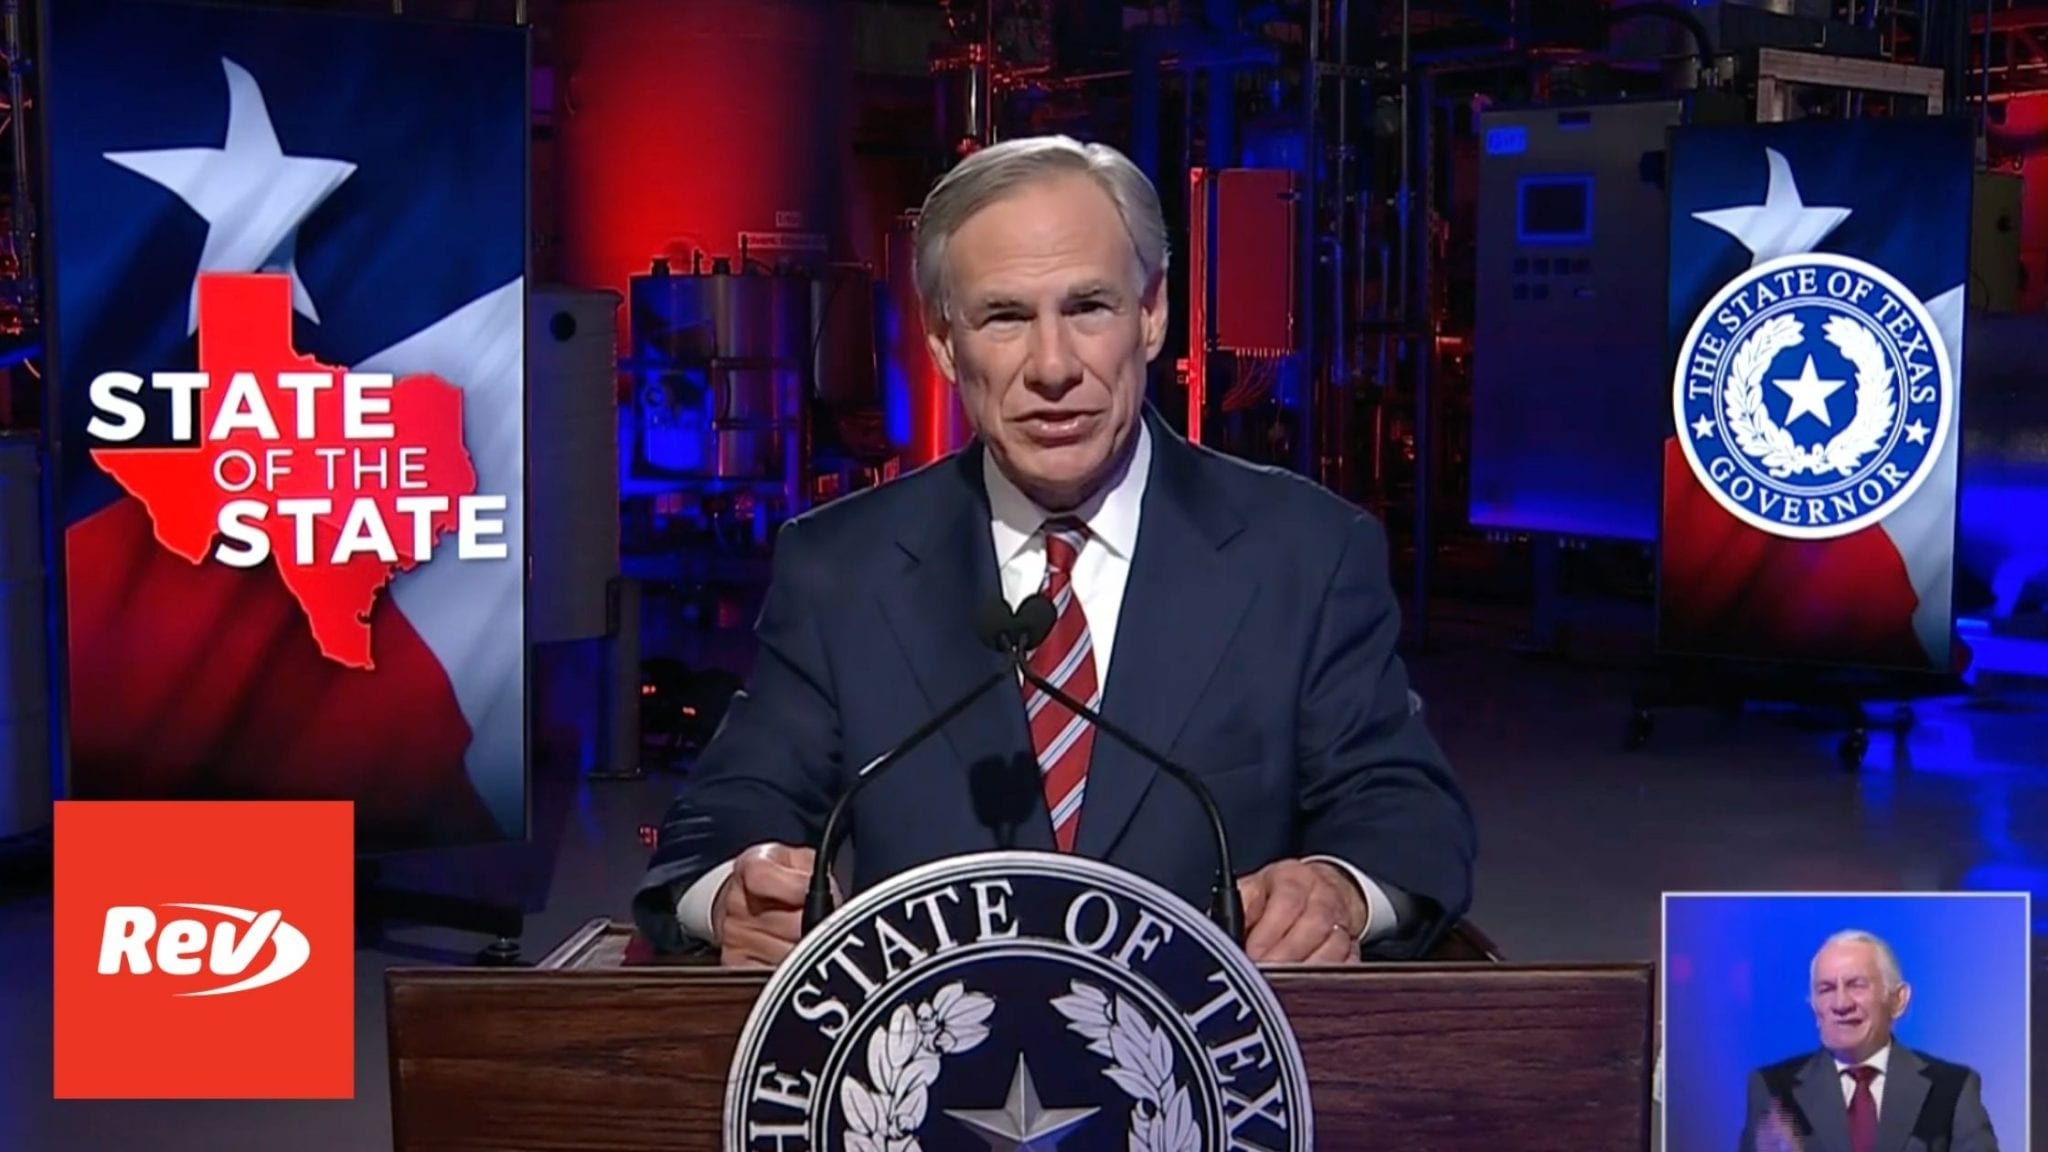 Greg Abbott State of the State Texas 2021